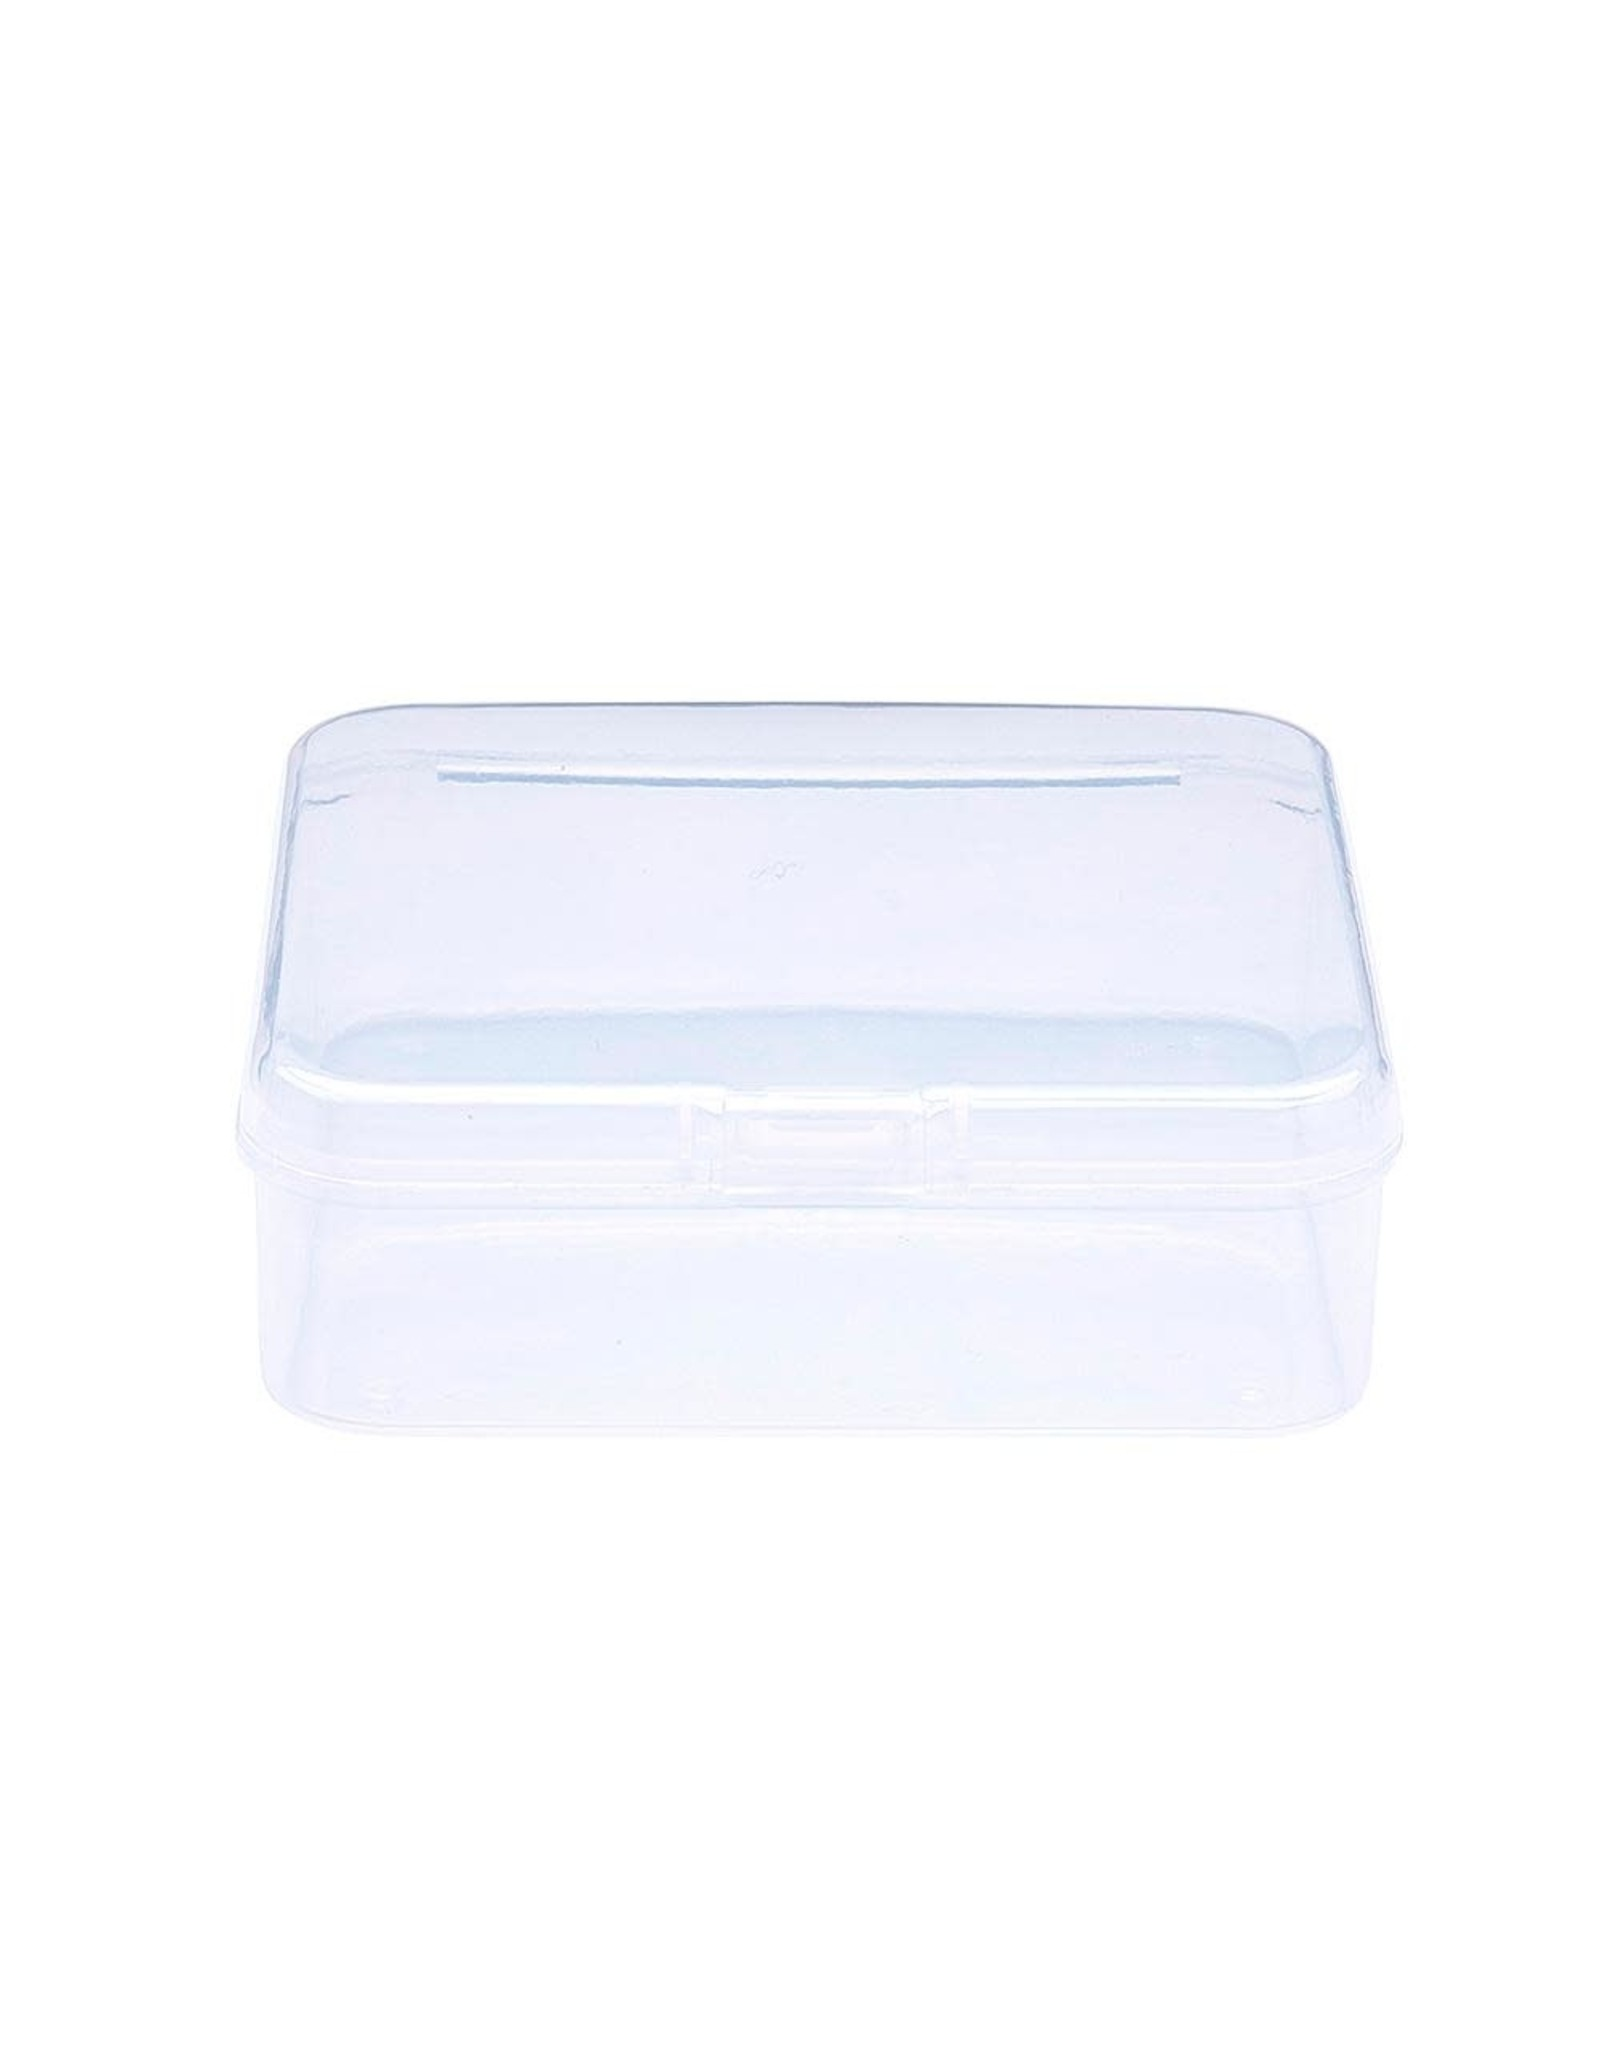 Bead Container Square Clear  7.4x7.4x2.5cm